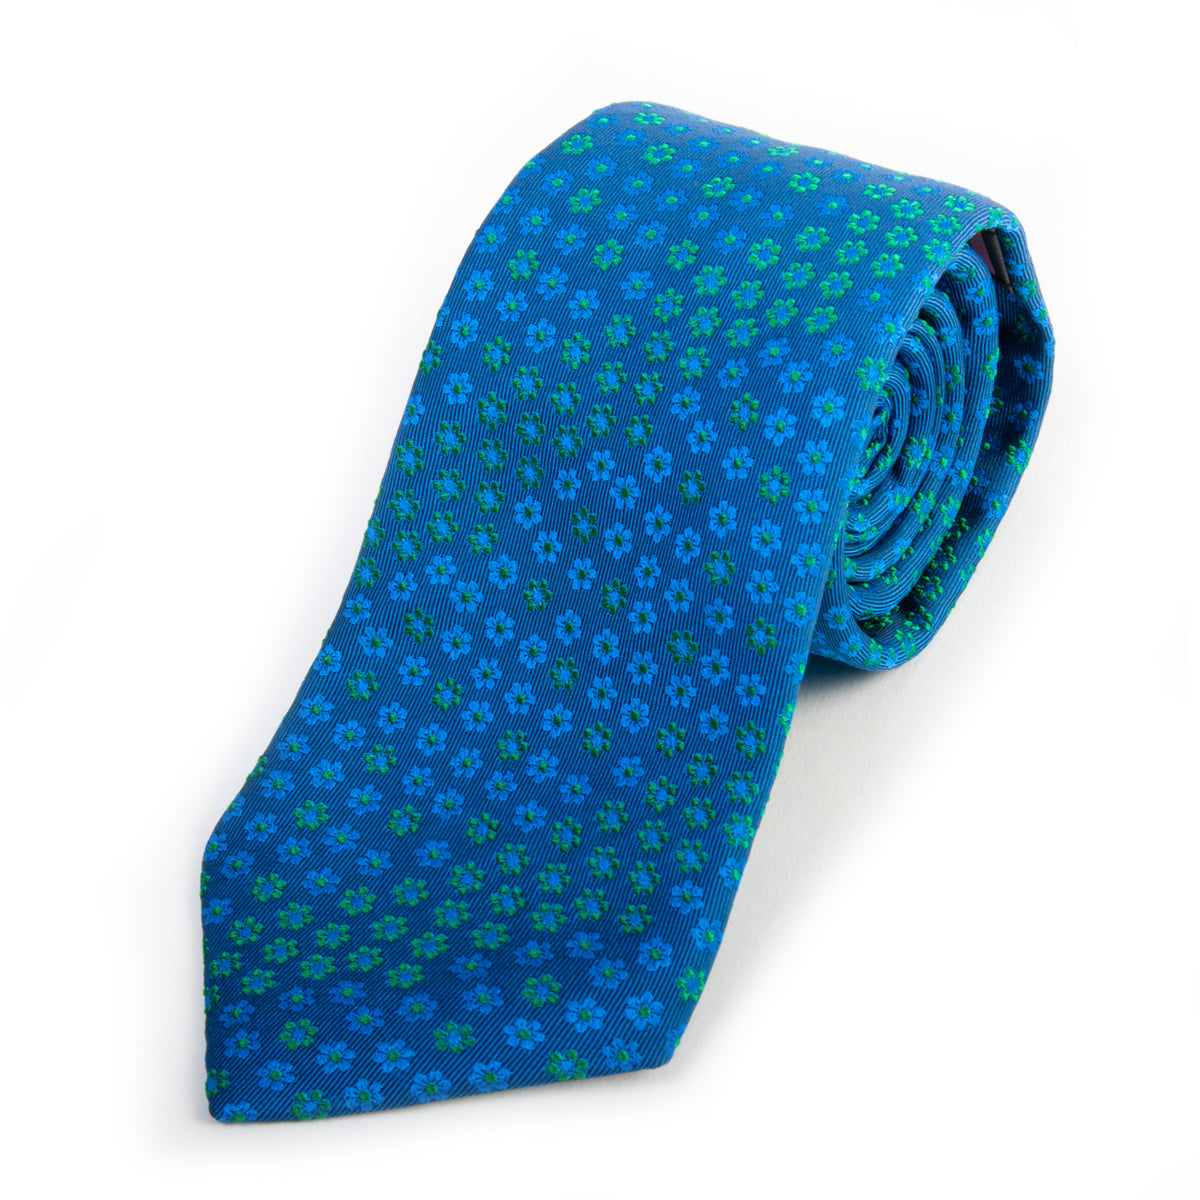 Thomas Pink Blue Floral Woven in England Silk Tie for Luxmrkt.com Menswear Consignment Edmonton